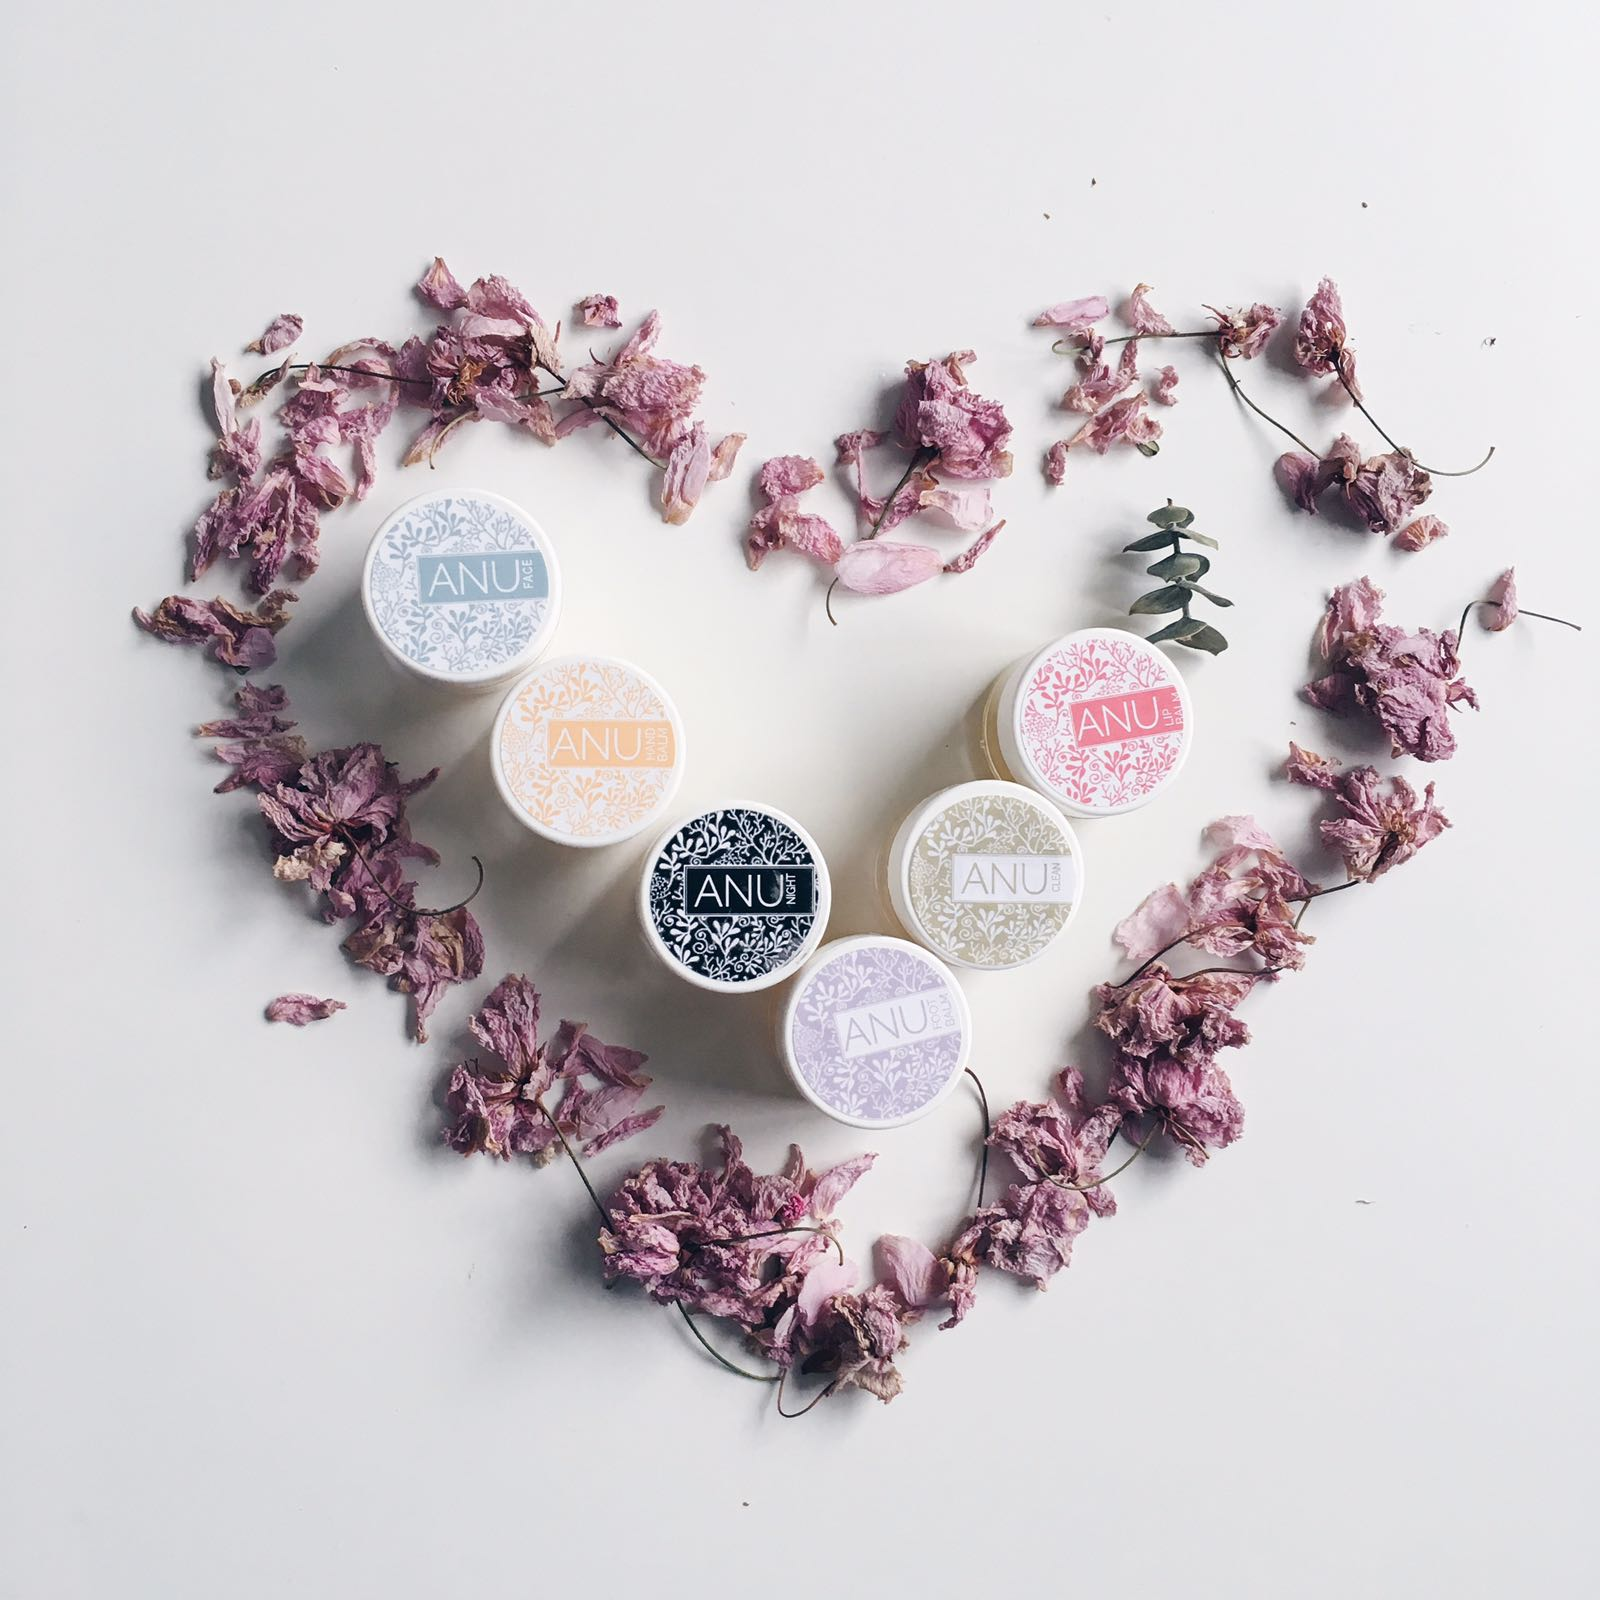 skincare products from Irish brand called Anu